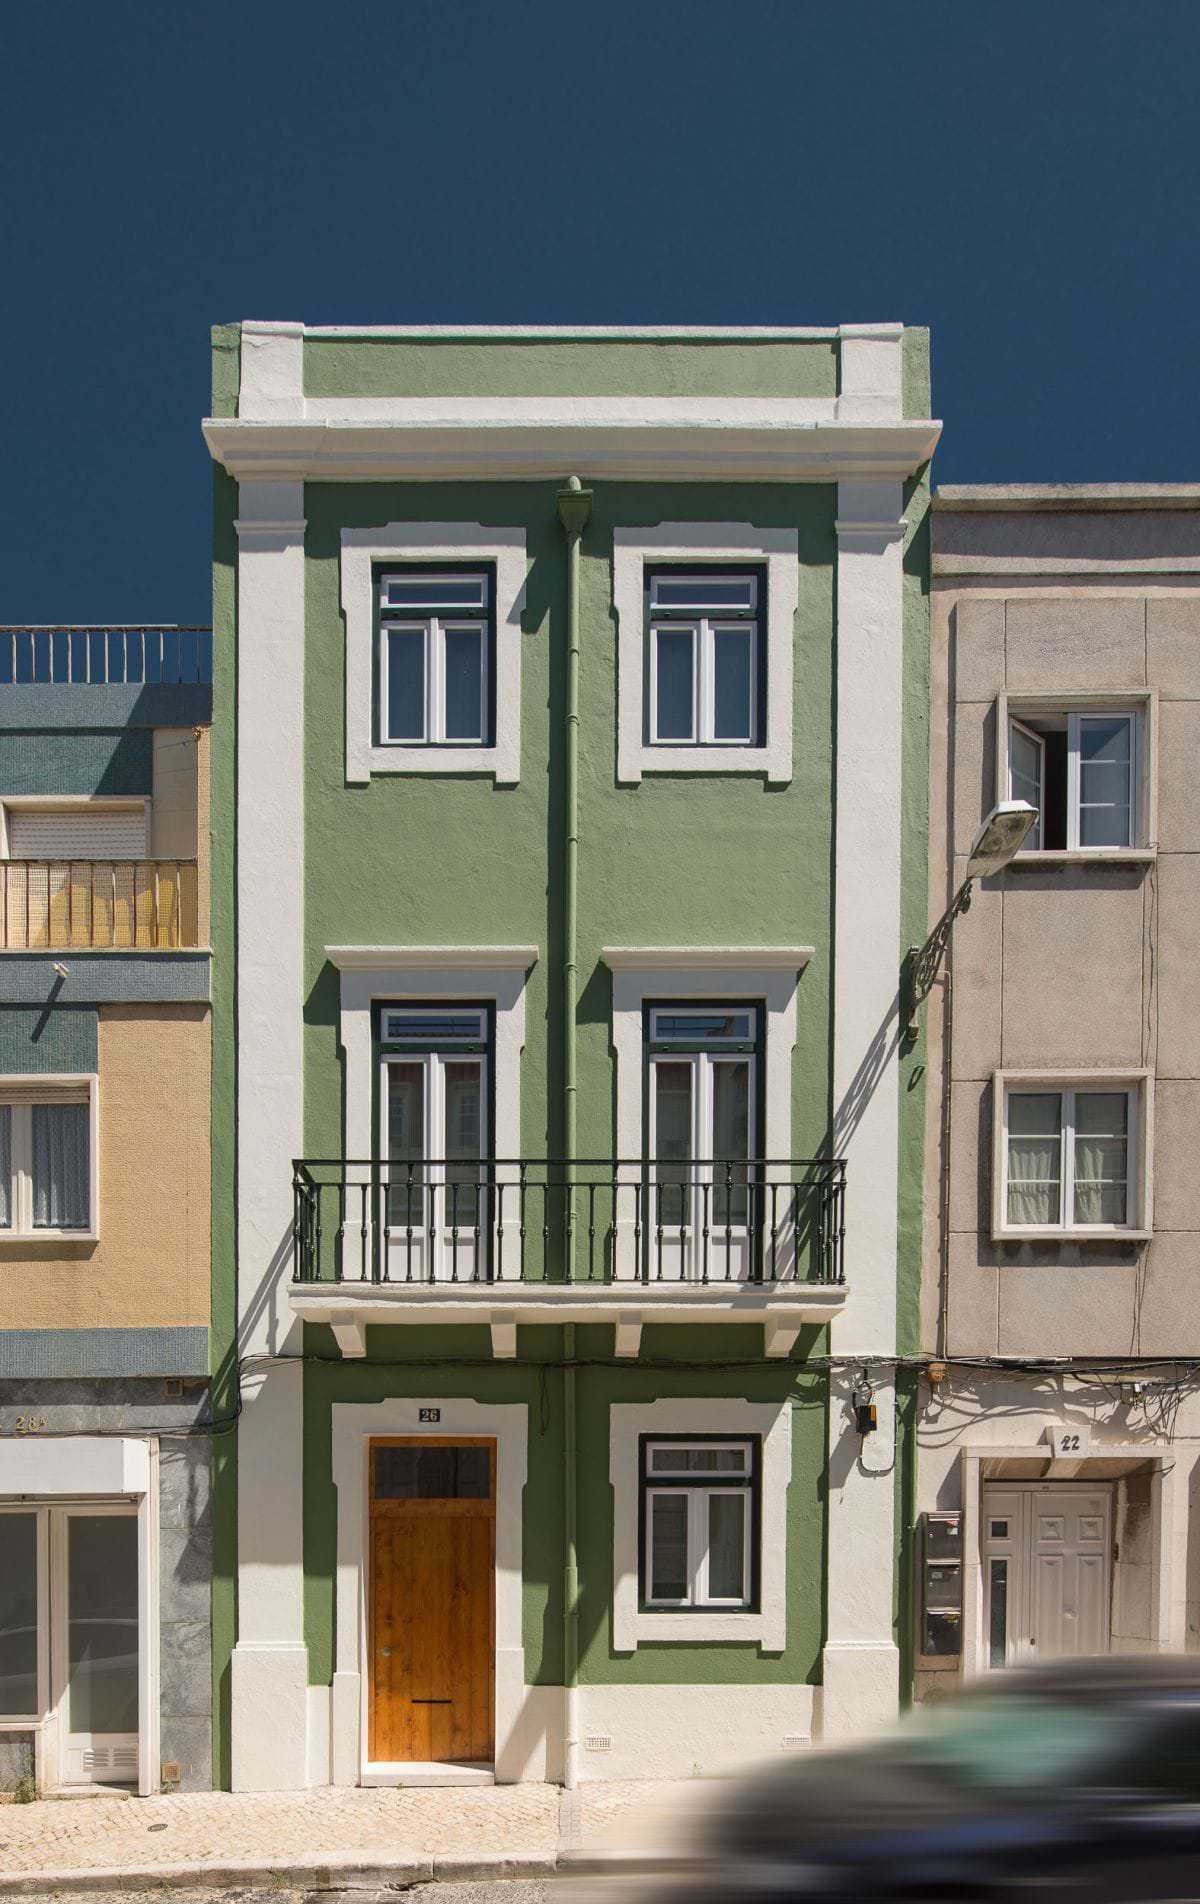 New research has ranked Portugal's municipalities on factors, such as rental cost (per square meter), rental yield and average house value to reveal which areas are perfect for potential investments.